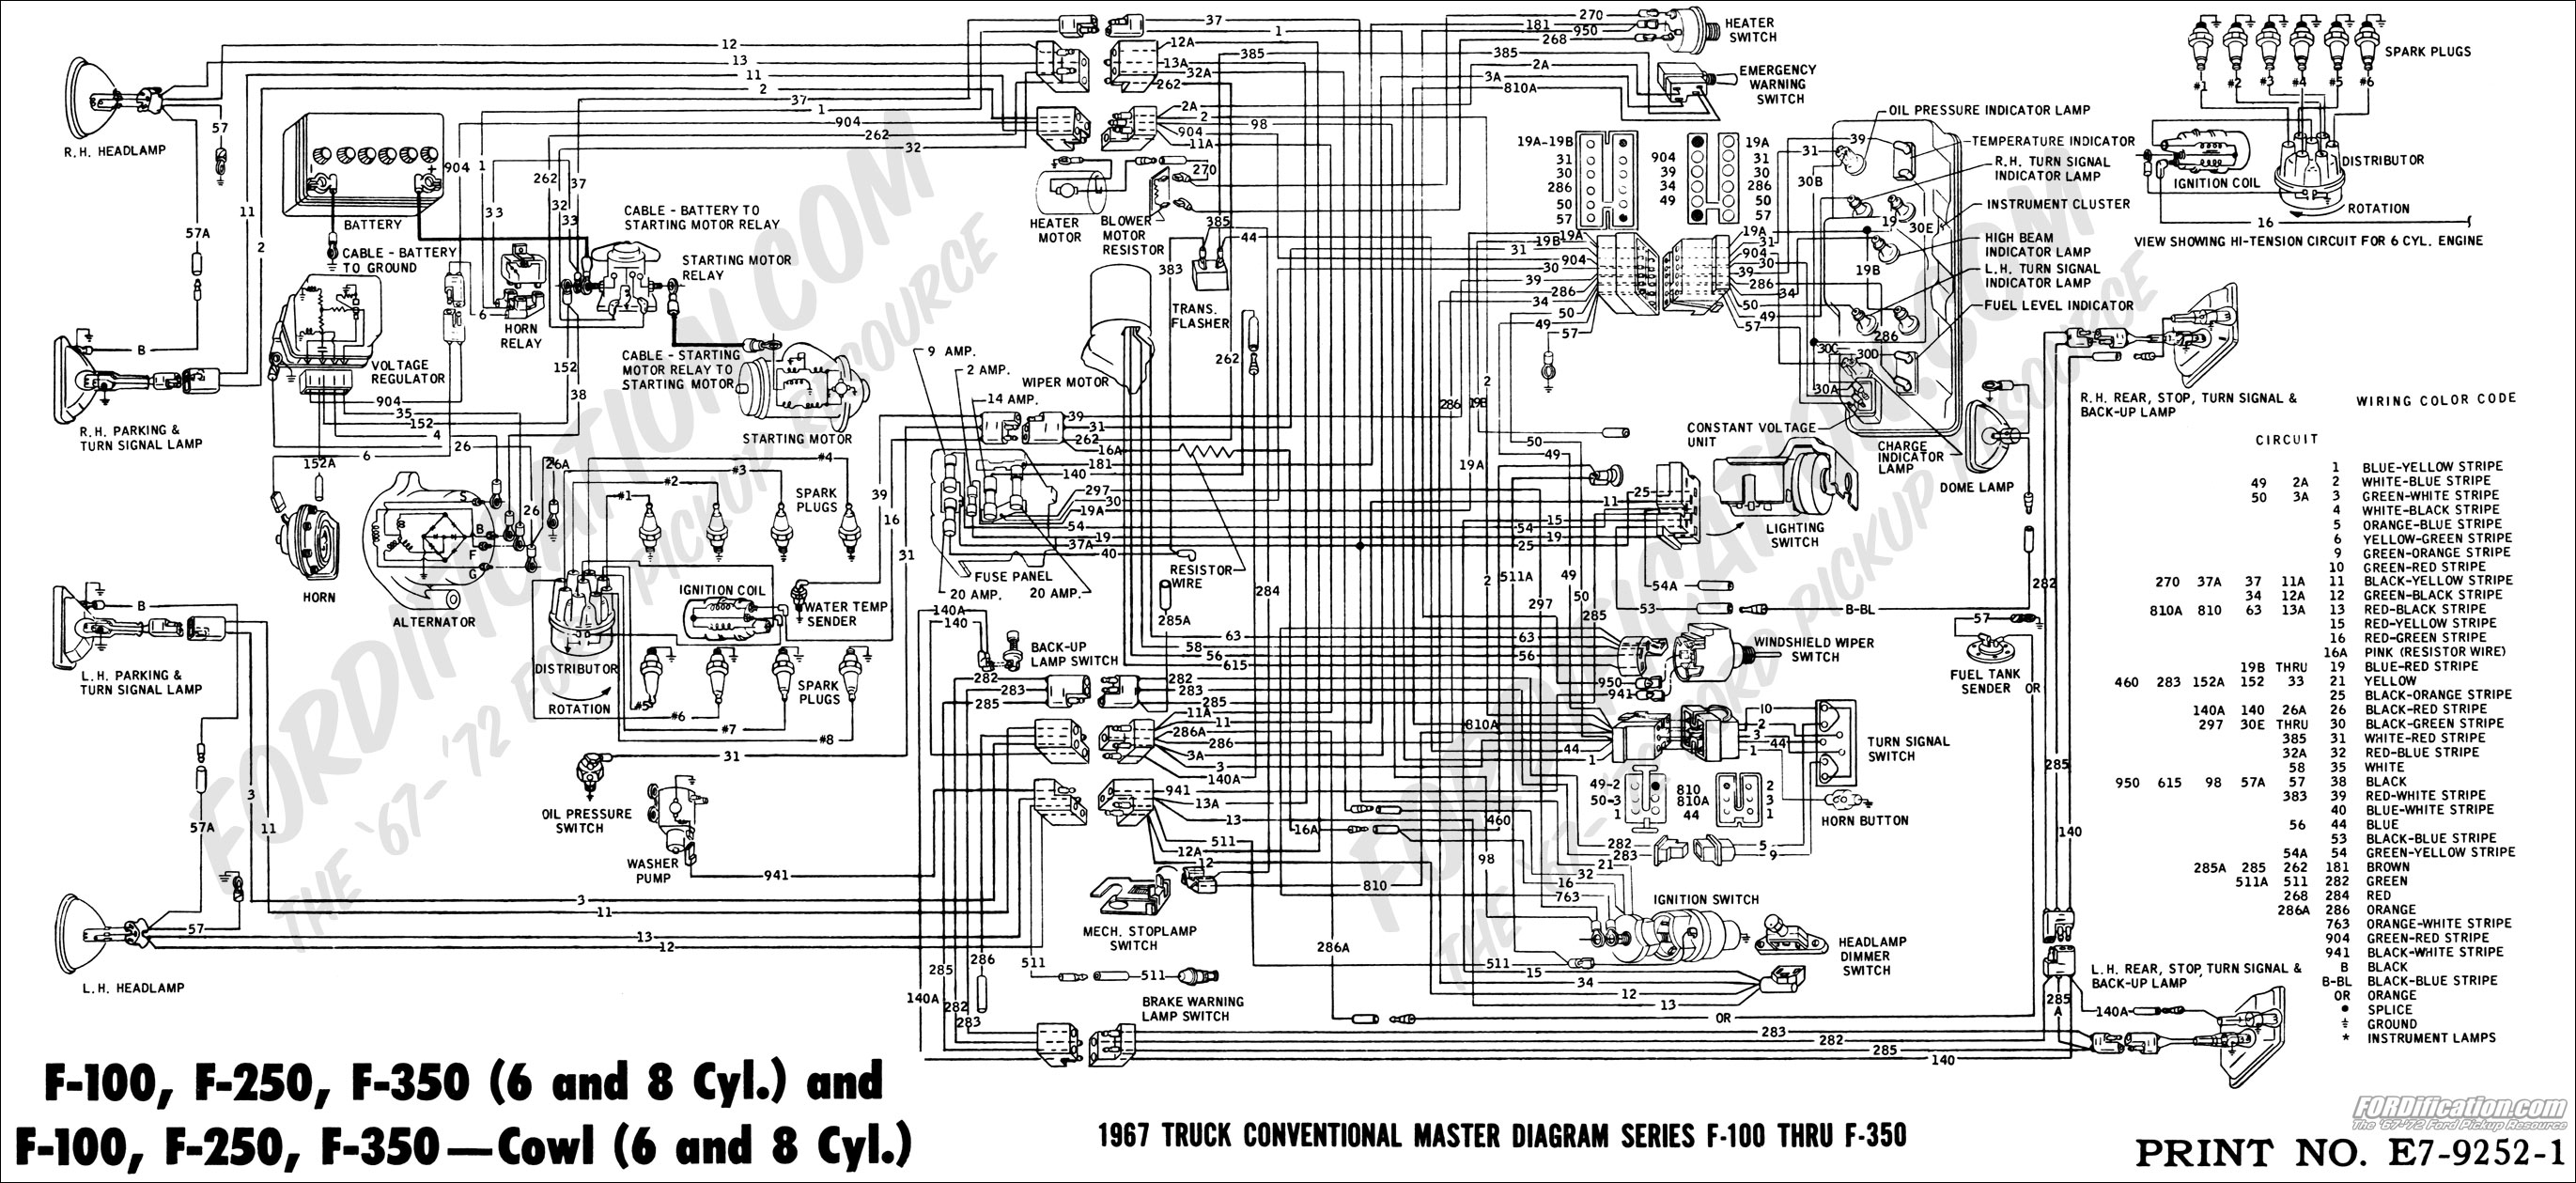 1968 ford pickup wiring diagram wiring diagram all data 1966 Ford F100 wiring diagram for 1968 ford f100 pick up wiring diagram detailed ford ranger brake system diagram 1968 ford pickup wiring diagram